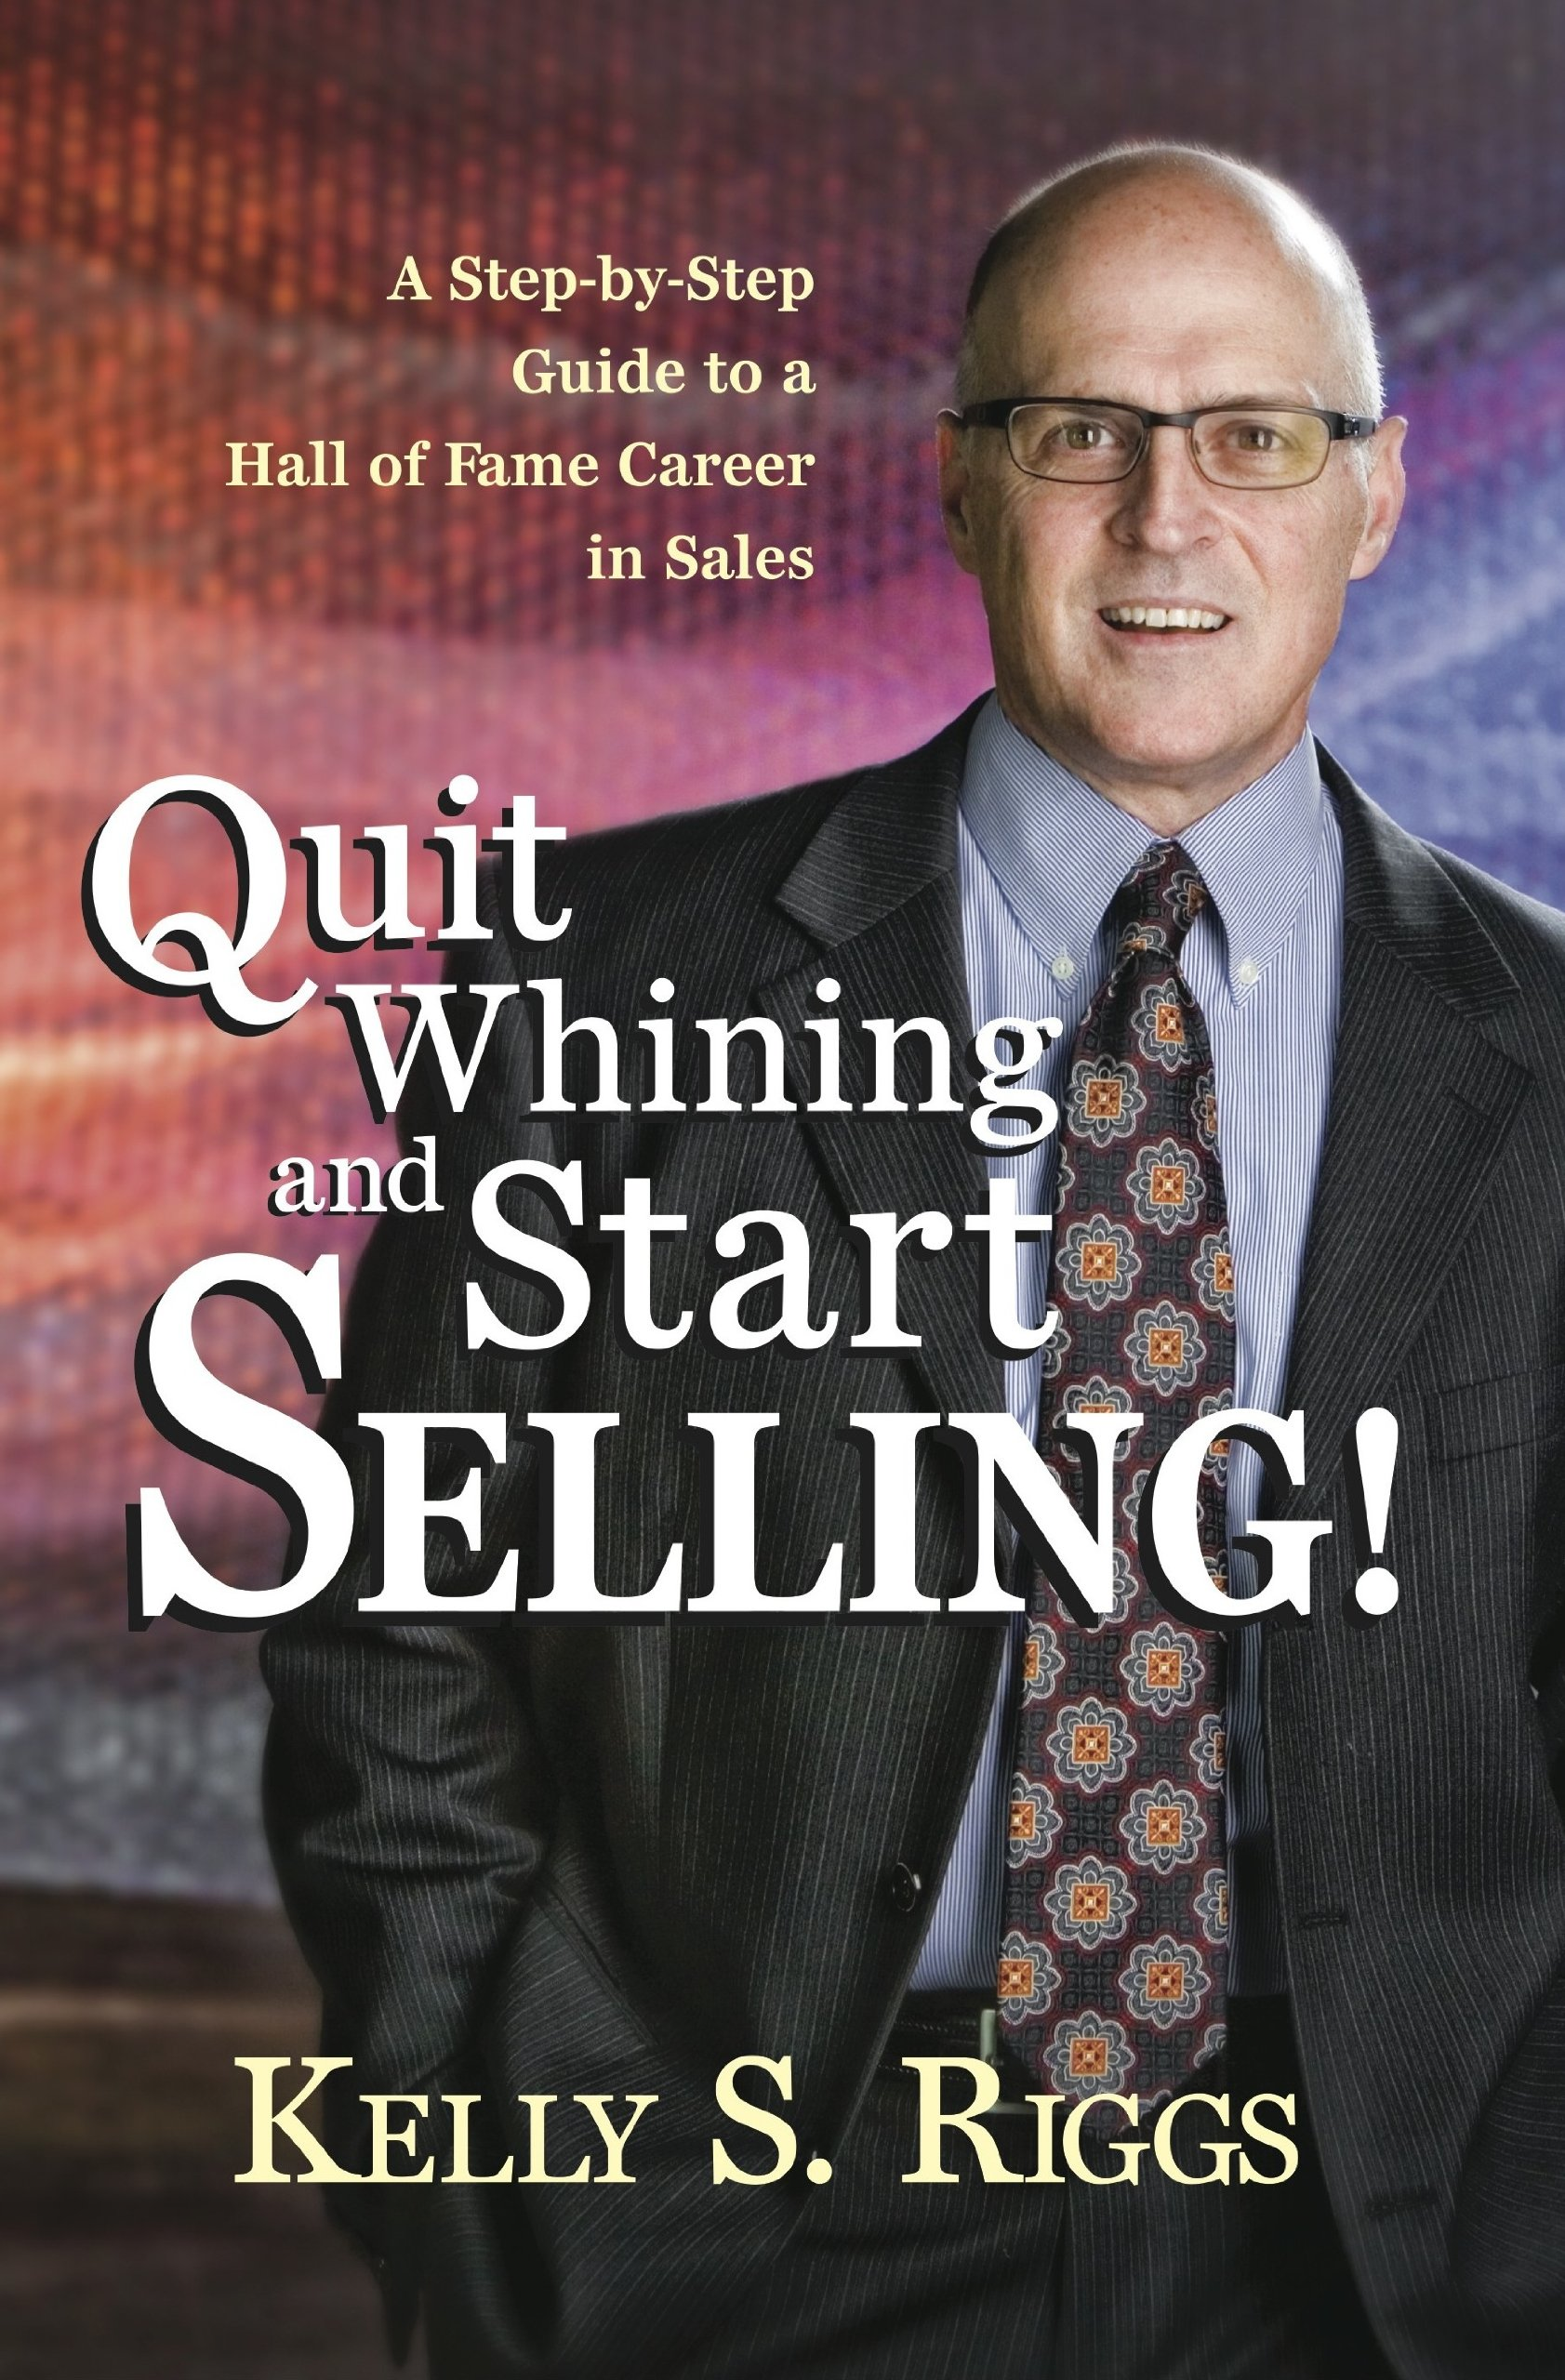 Quit Whining and Start Selling! - A Step-by-Step Guide to a Hall of Fame Career in Sales